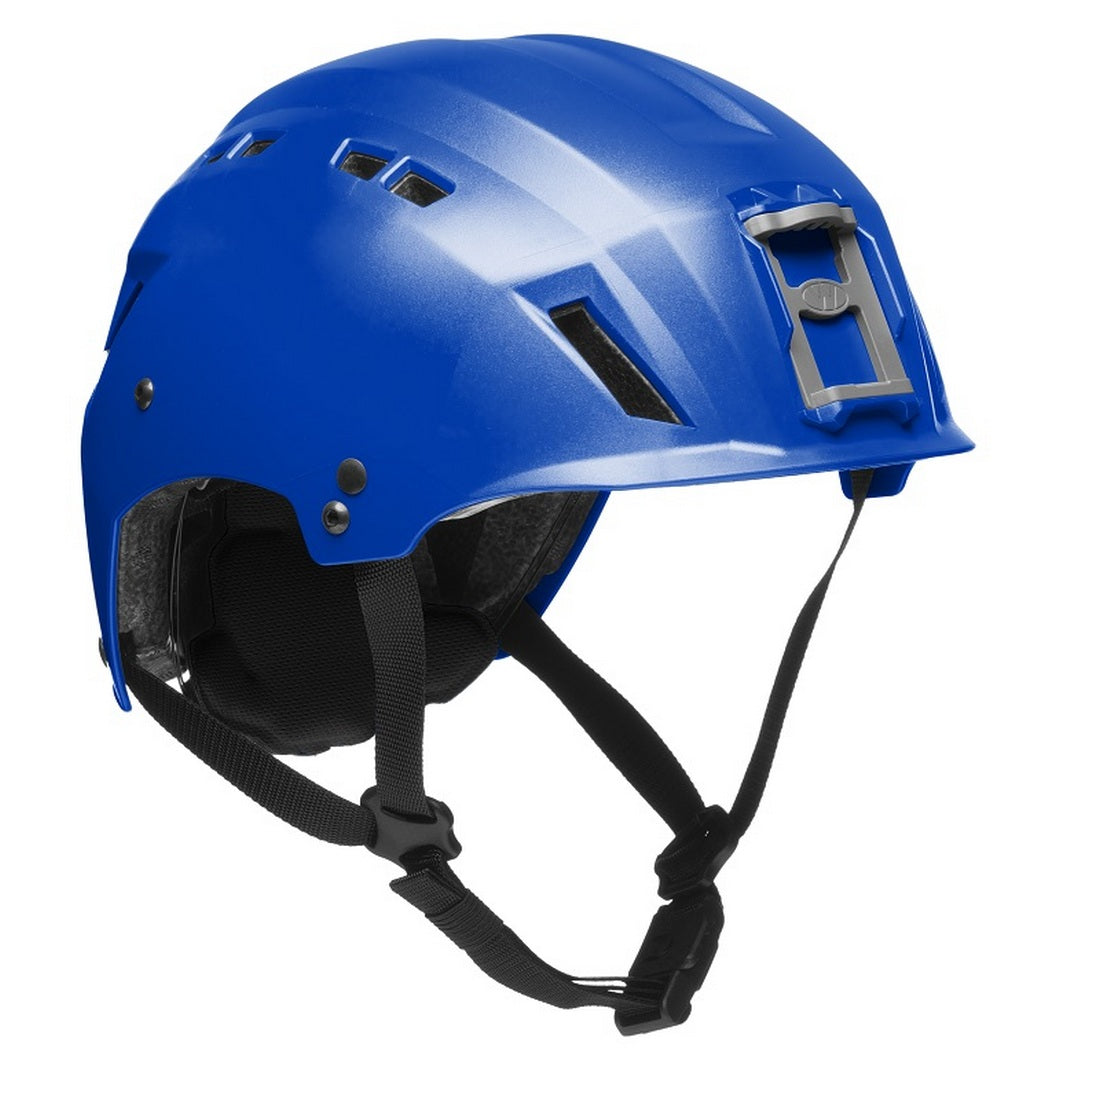 Team Wendy EXFIL SAR Backcountry Helmet